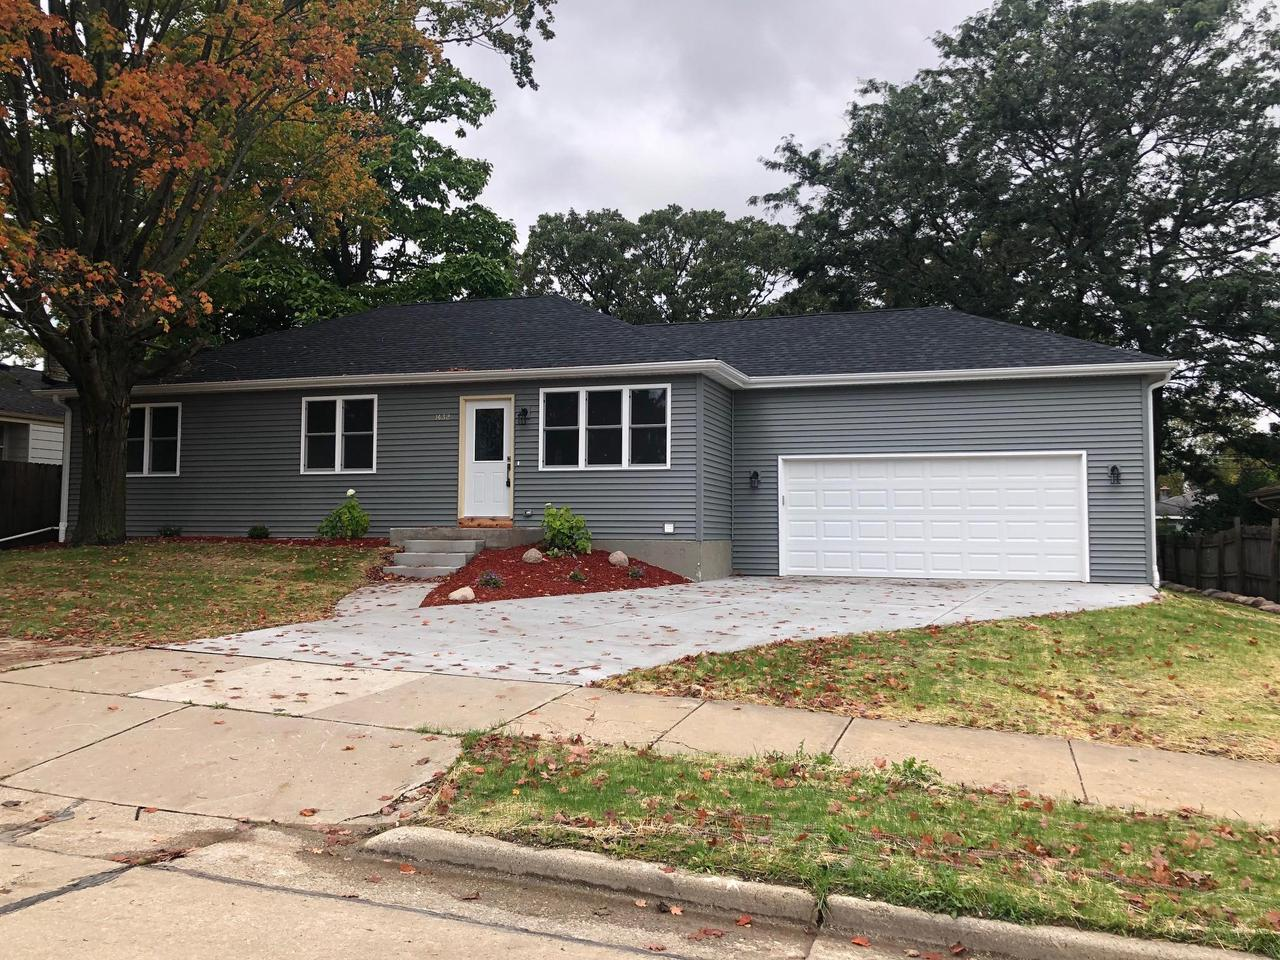 Beautiful modern NEW construction!! Modern finishes combined with tons of natural sunlight and a big back yard complete this stunning new home.  Nothing left to do except move in!!!